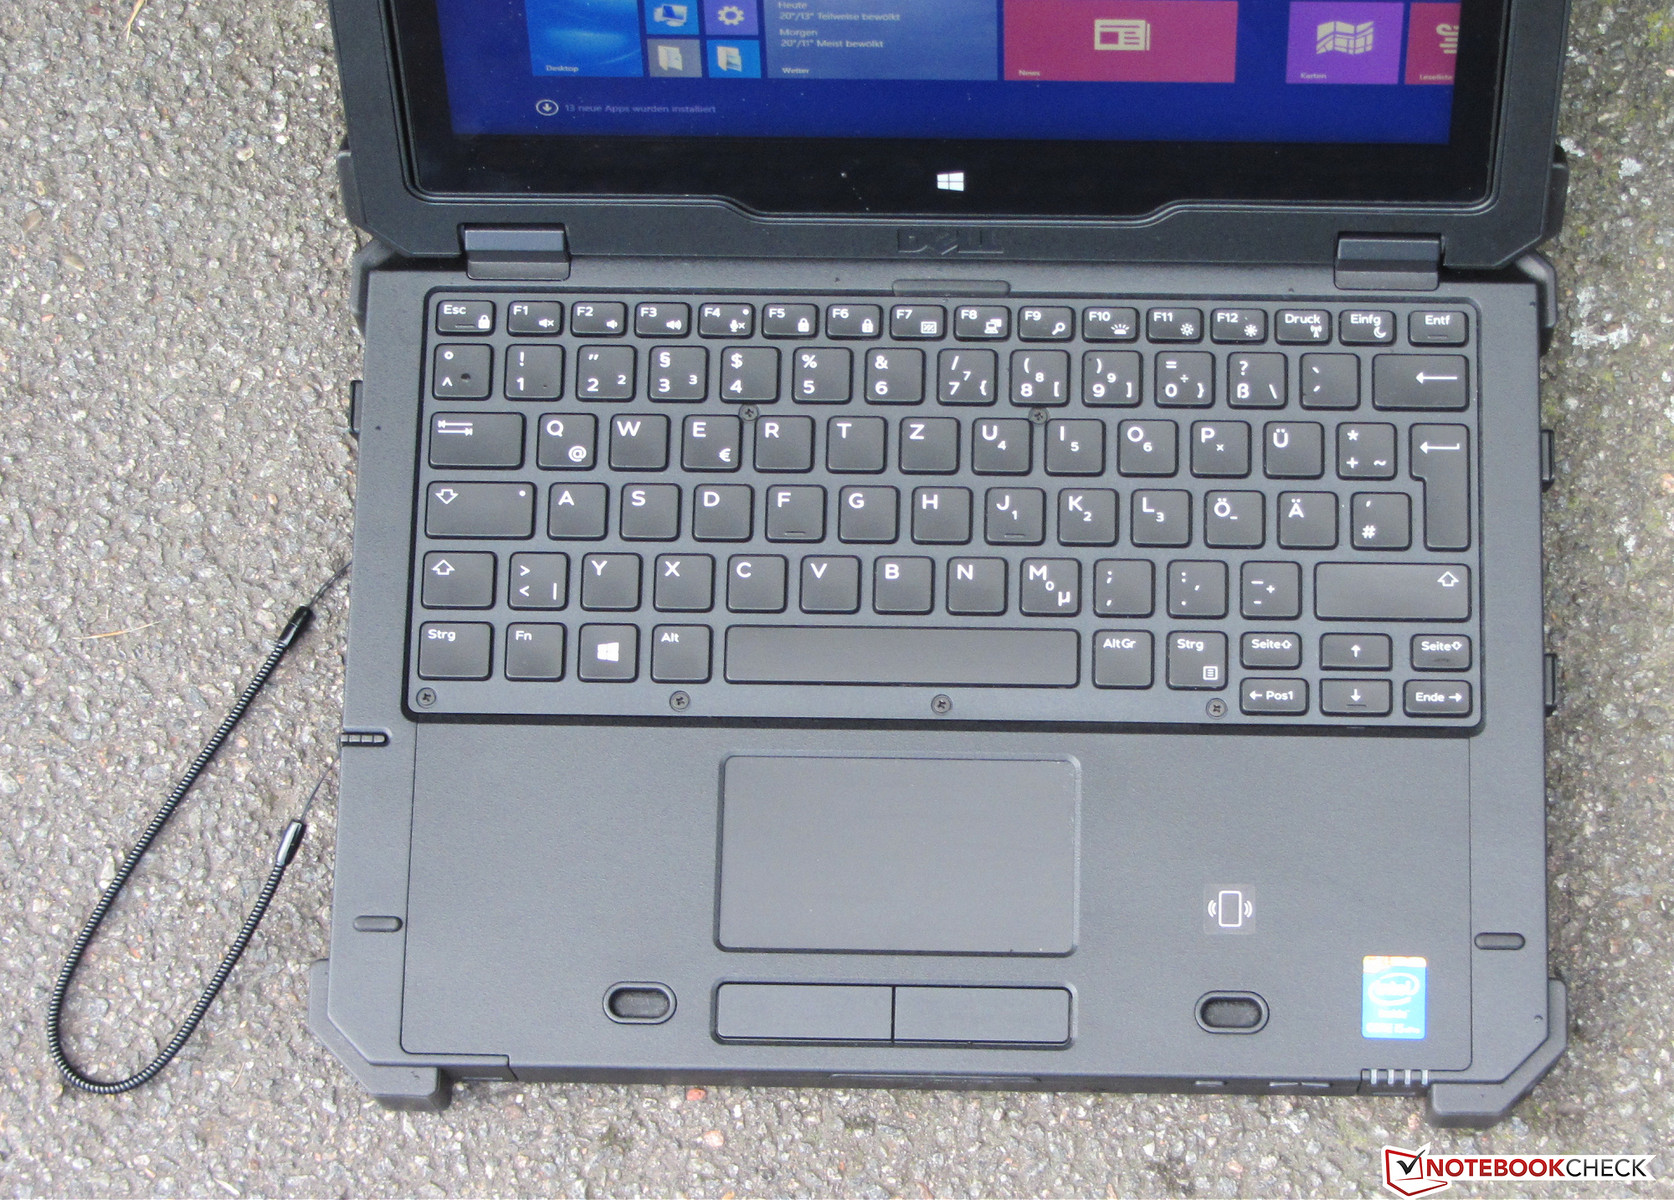 Dell Latitude 12 Rugged Extreme Convertible Review